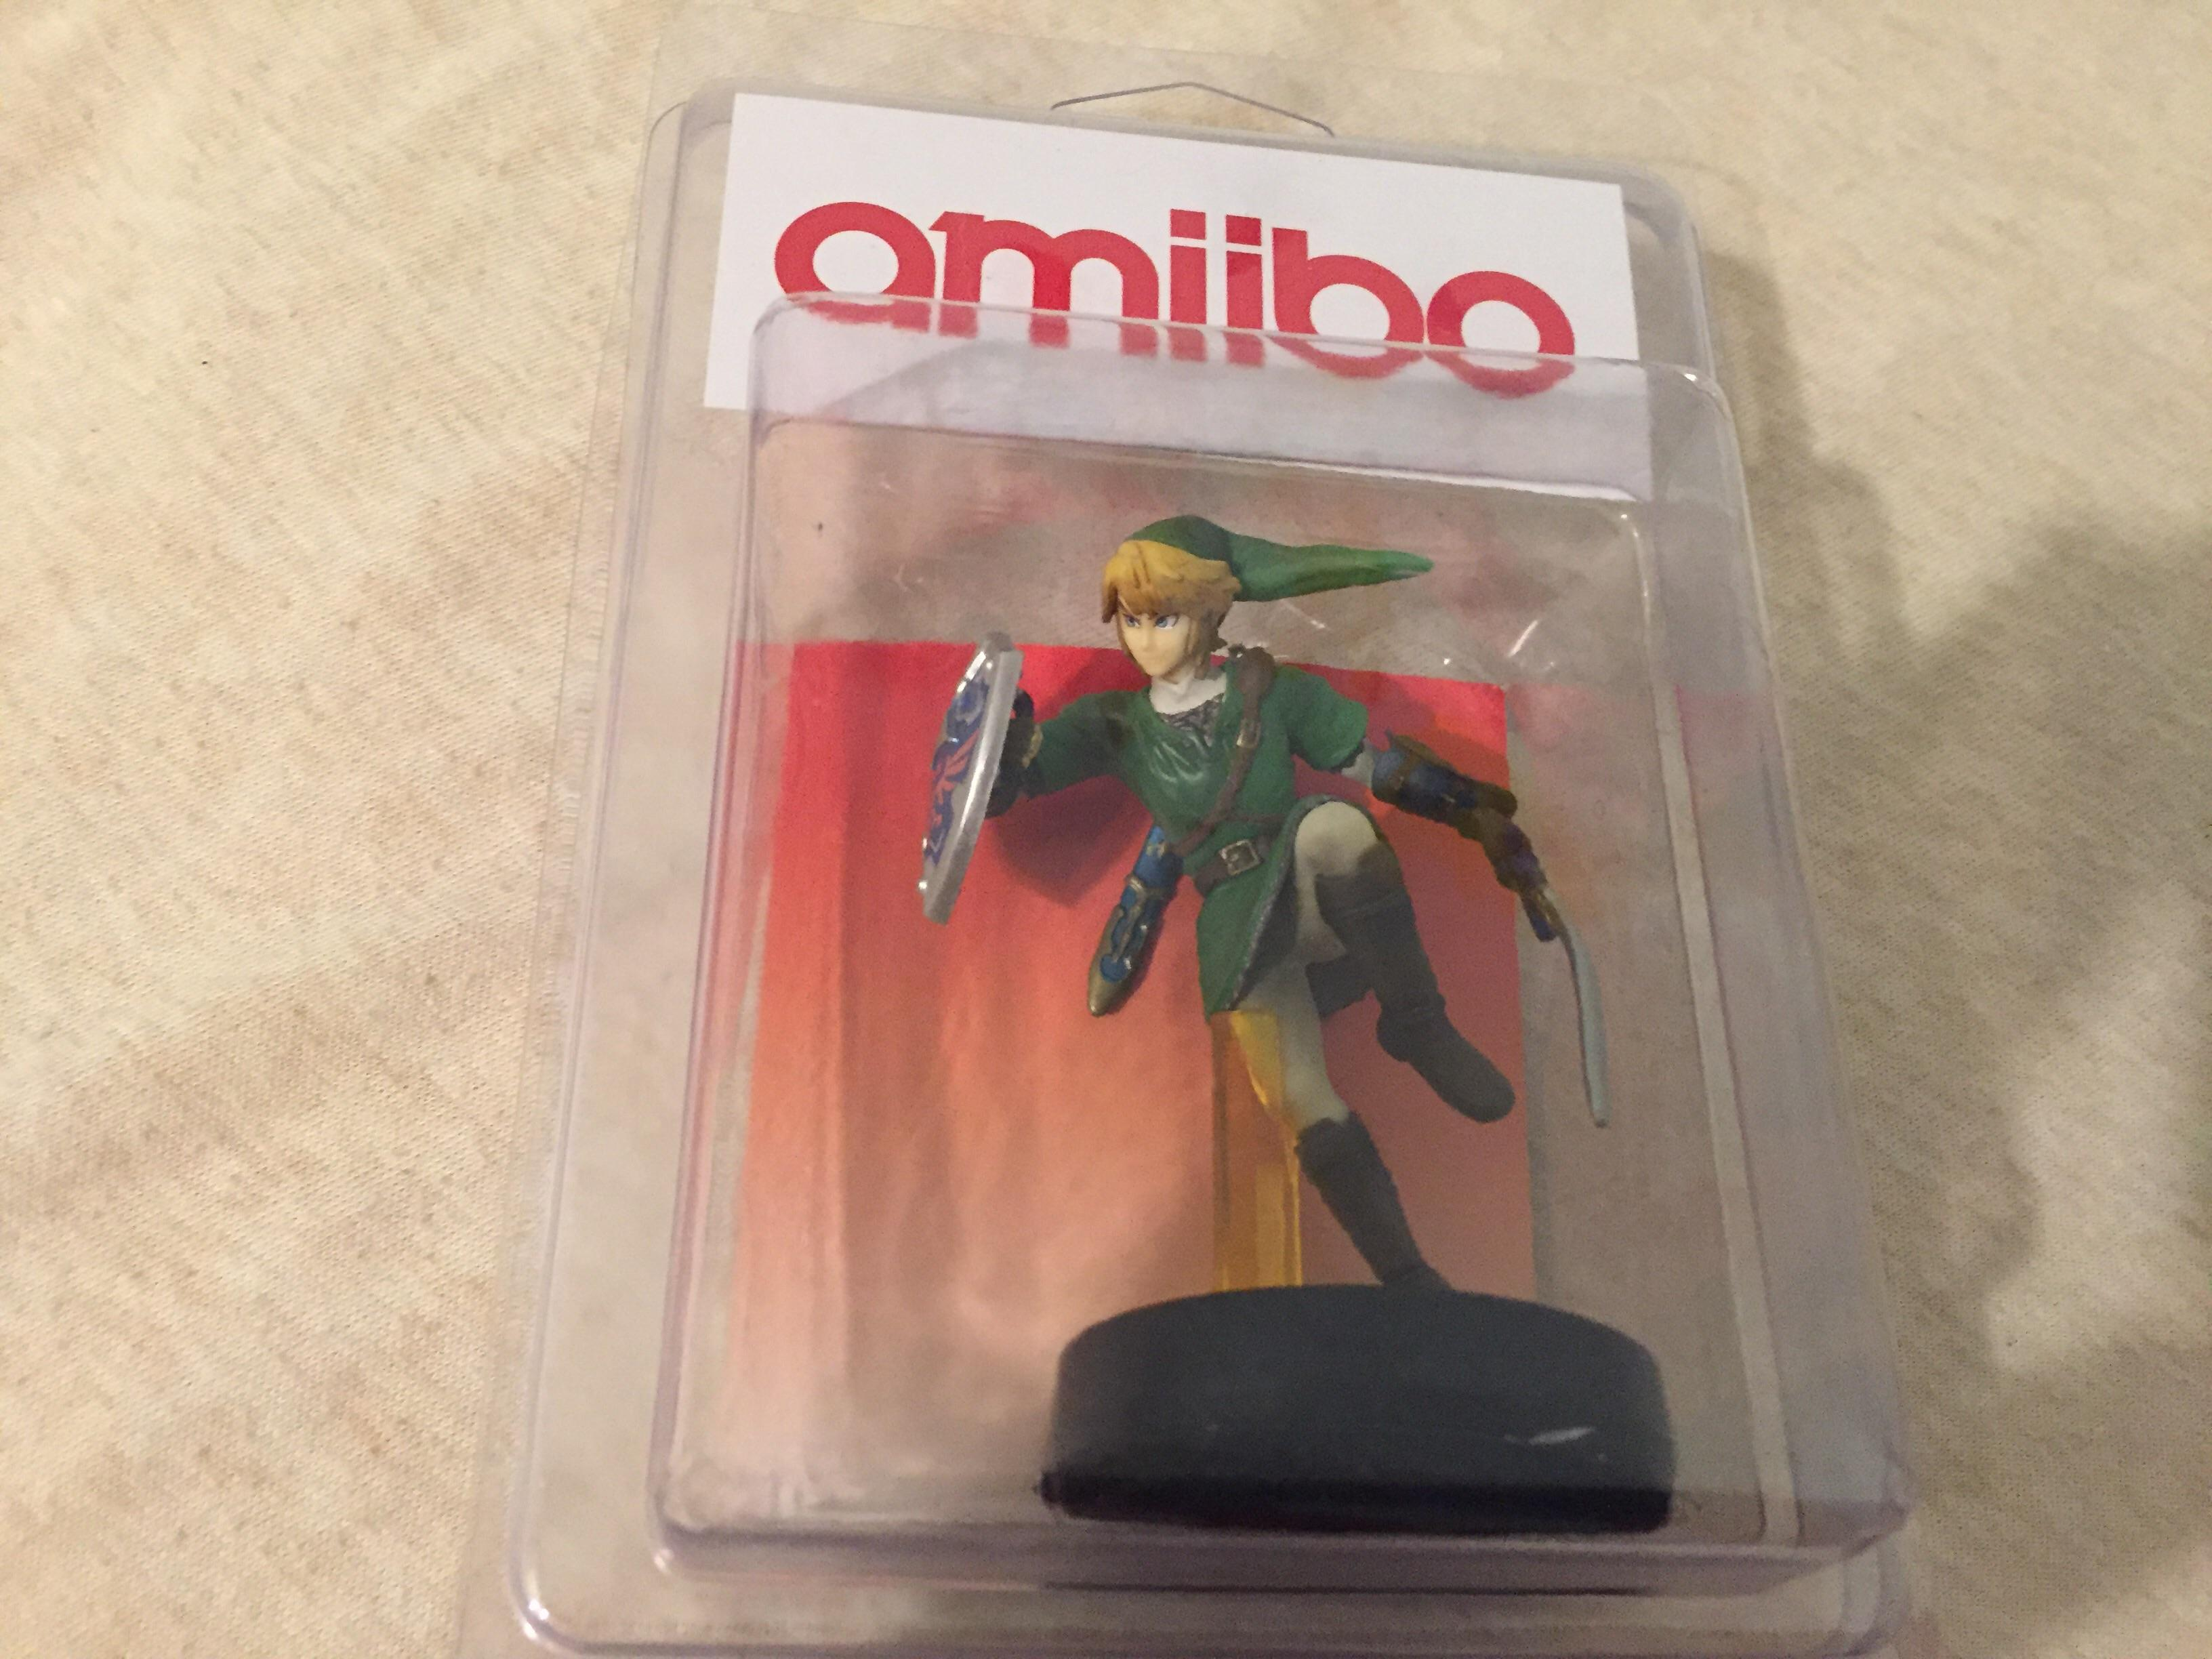 I can't stop laughing at this bootleg Legend of Zelda Link amiibo screenshot